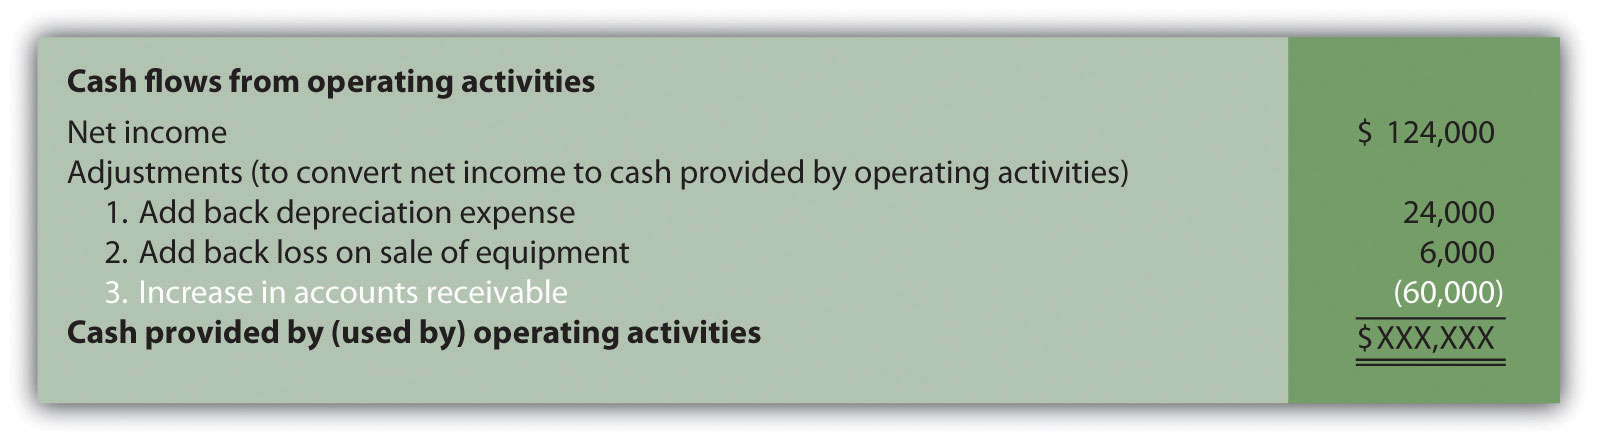 How Is the Statement of Cash Flows Prepared and Used?